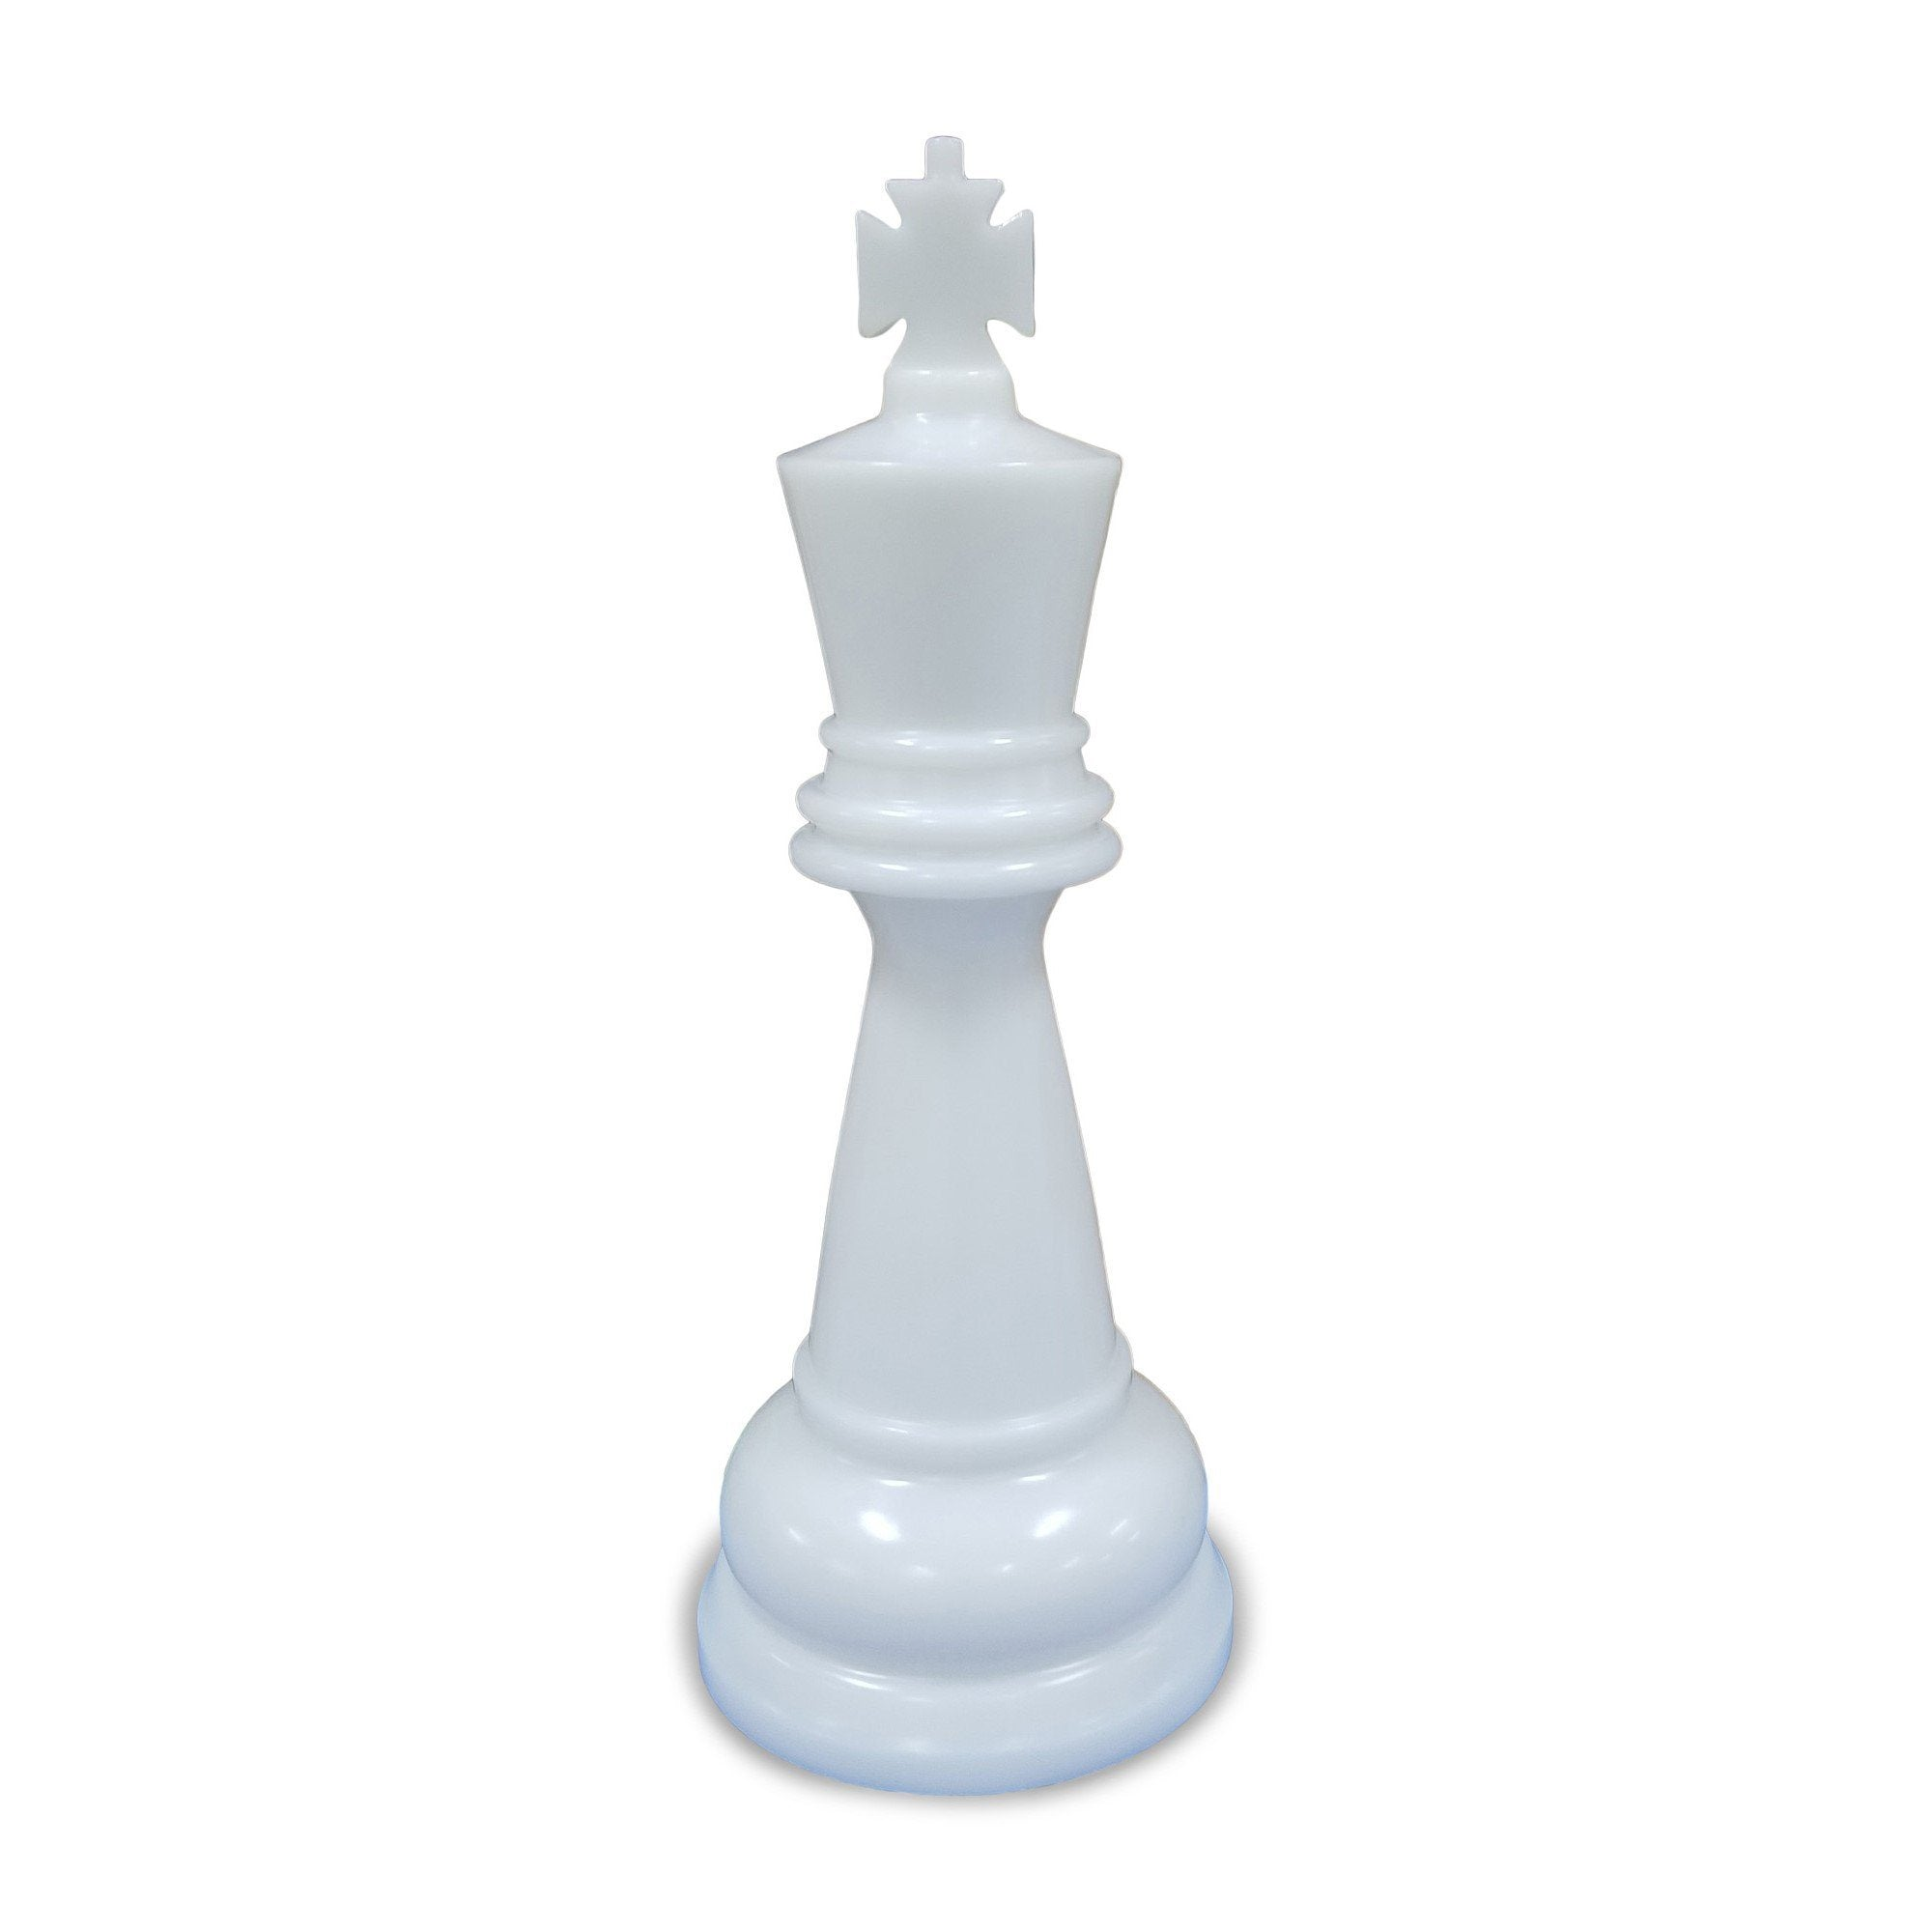 MegaChess 38 Inch White Premium Plastic King Giant Chess Piece | Default Title | GiantChessUSA